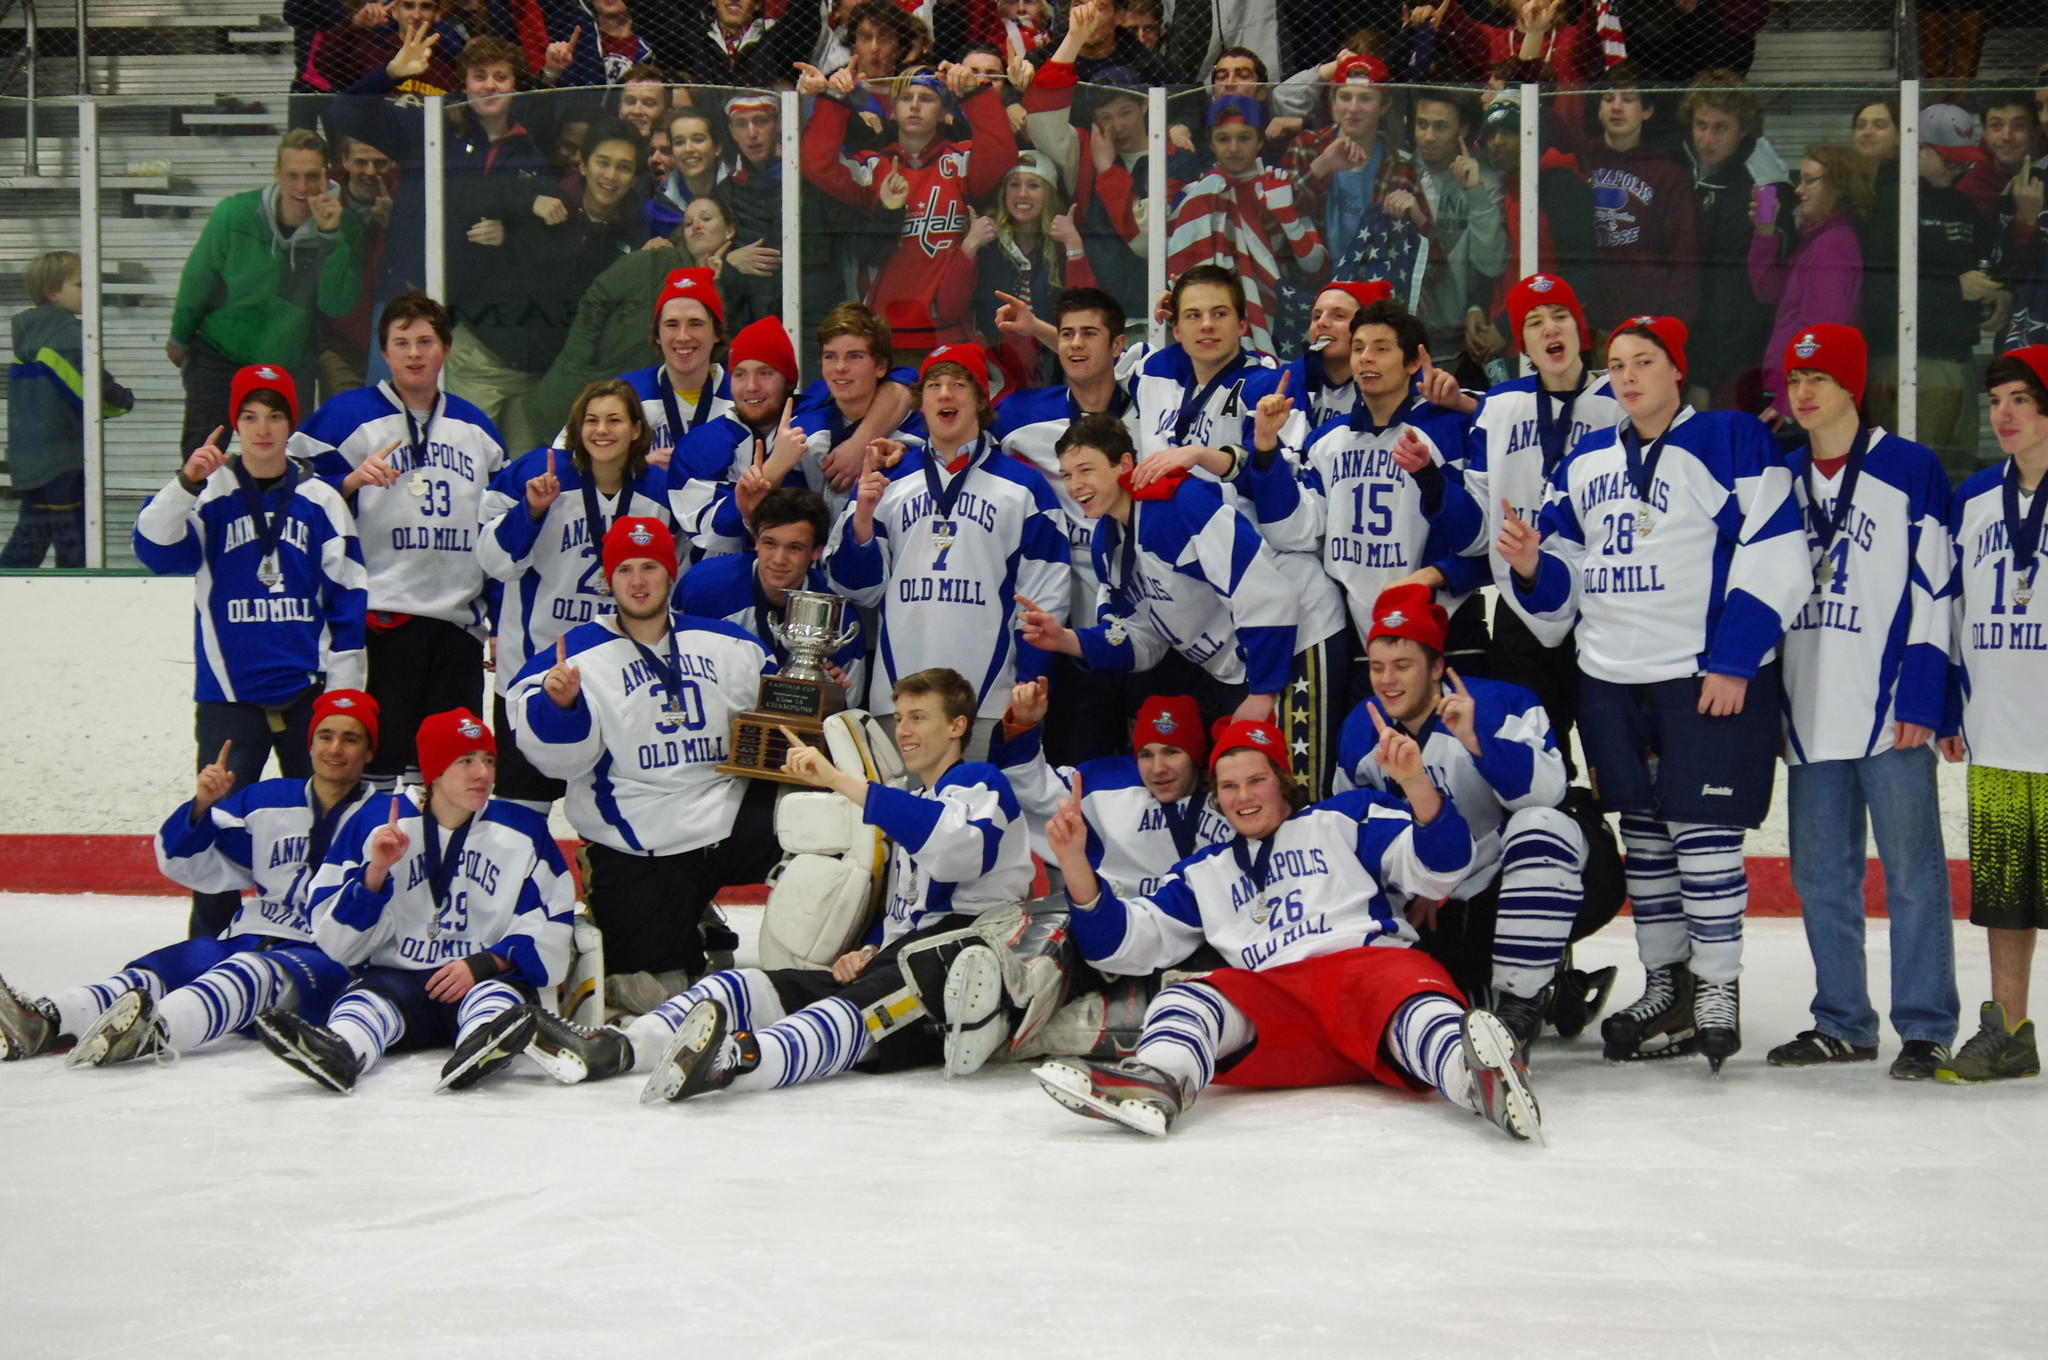 Members of the Annapolis Old Mill hockey team celebrate the team's win over Washington County Northstars, 5-1, capturing the Maryland Scholastic Hockey League Class 1A Ice Hockey Championship on Friday at the Garden's Ice House in Laurel.